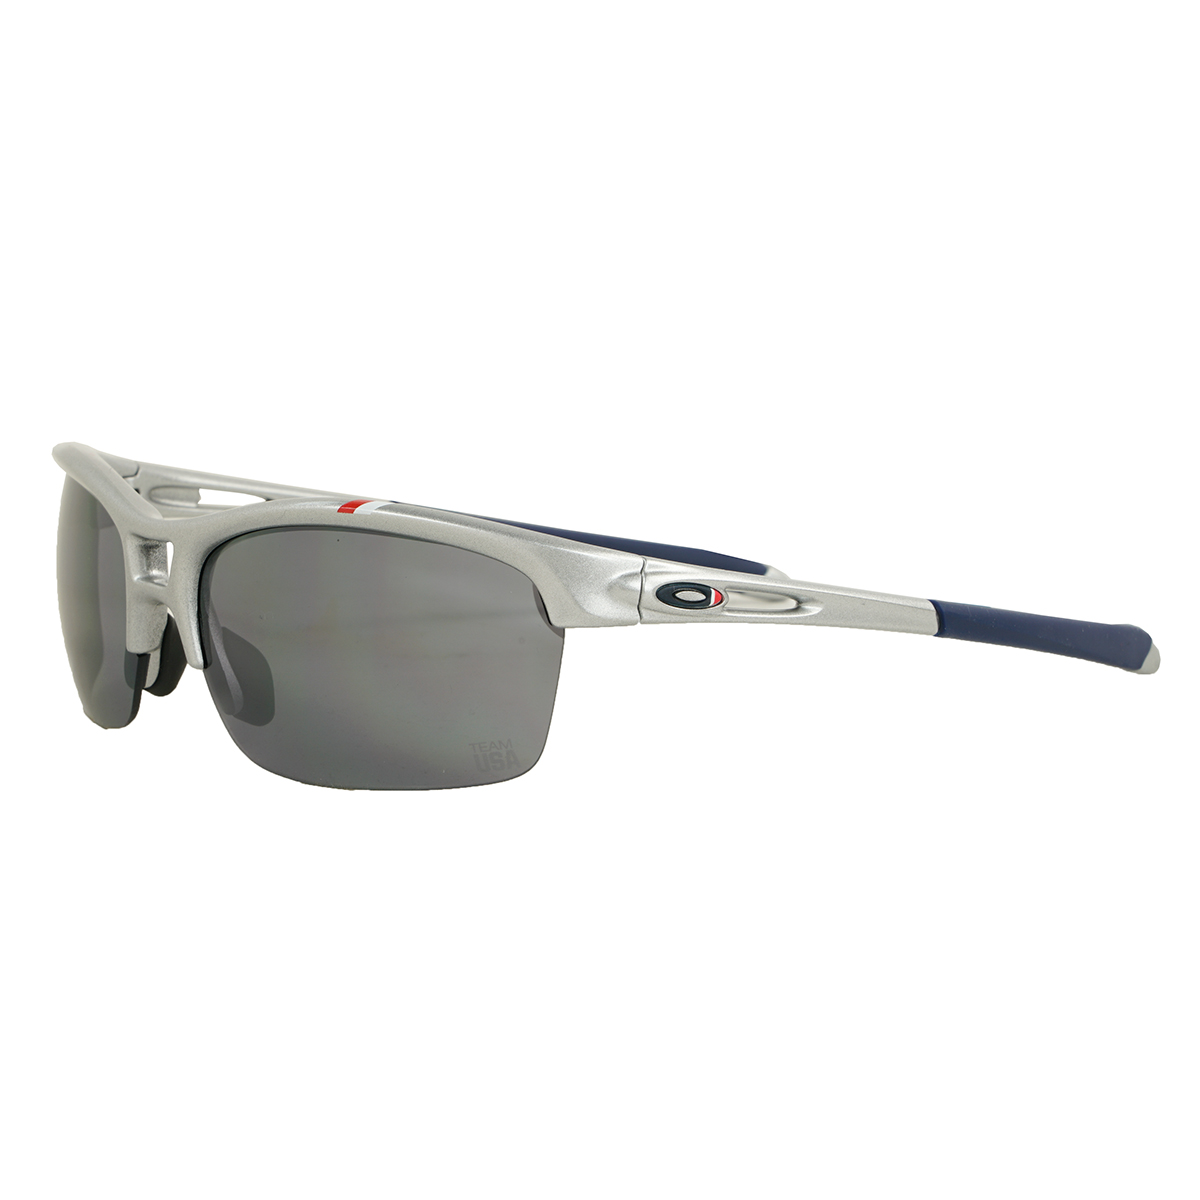 a6c43f1467d Details about Oakley Team USA RPM Squared Sunglasses Silver Black Iridium